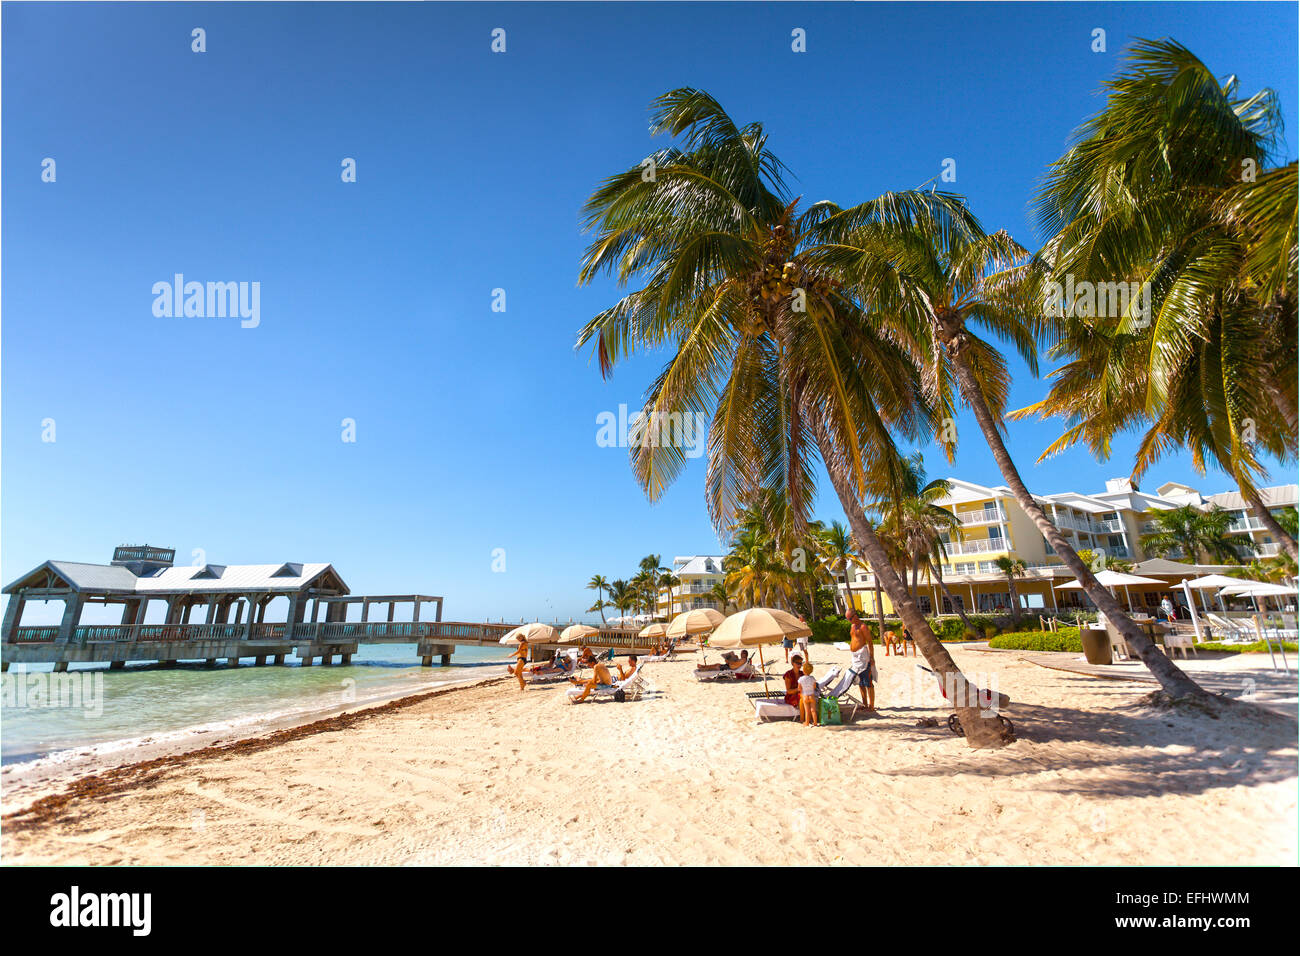 beach area at luxury hotel reach resort, key west, florida keys